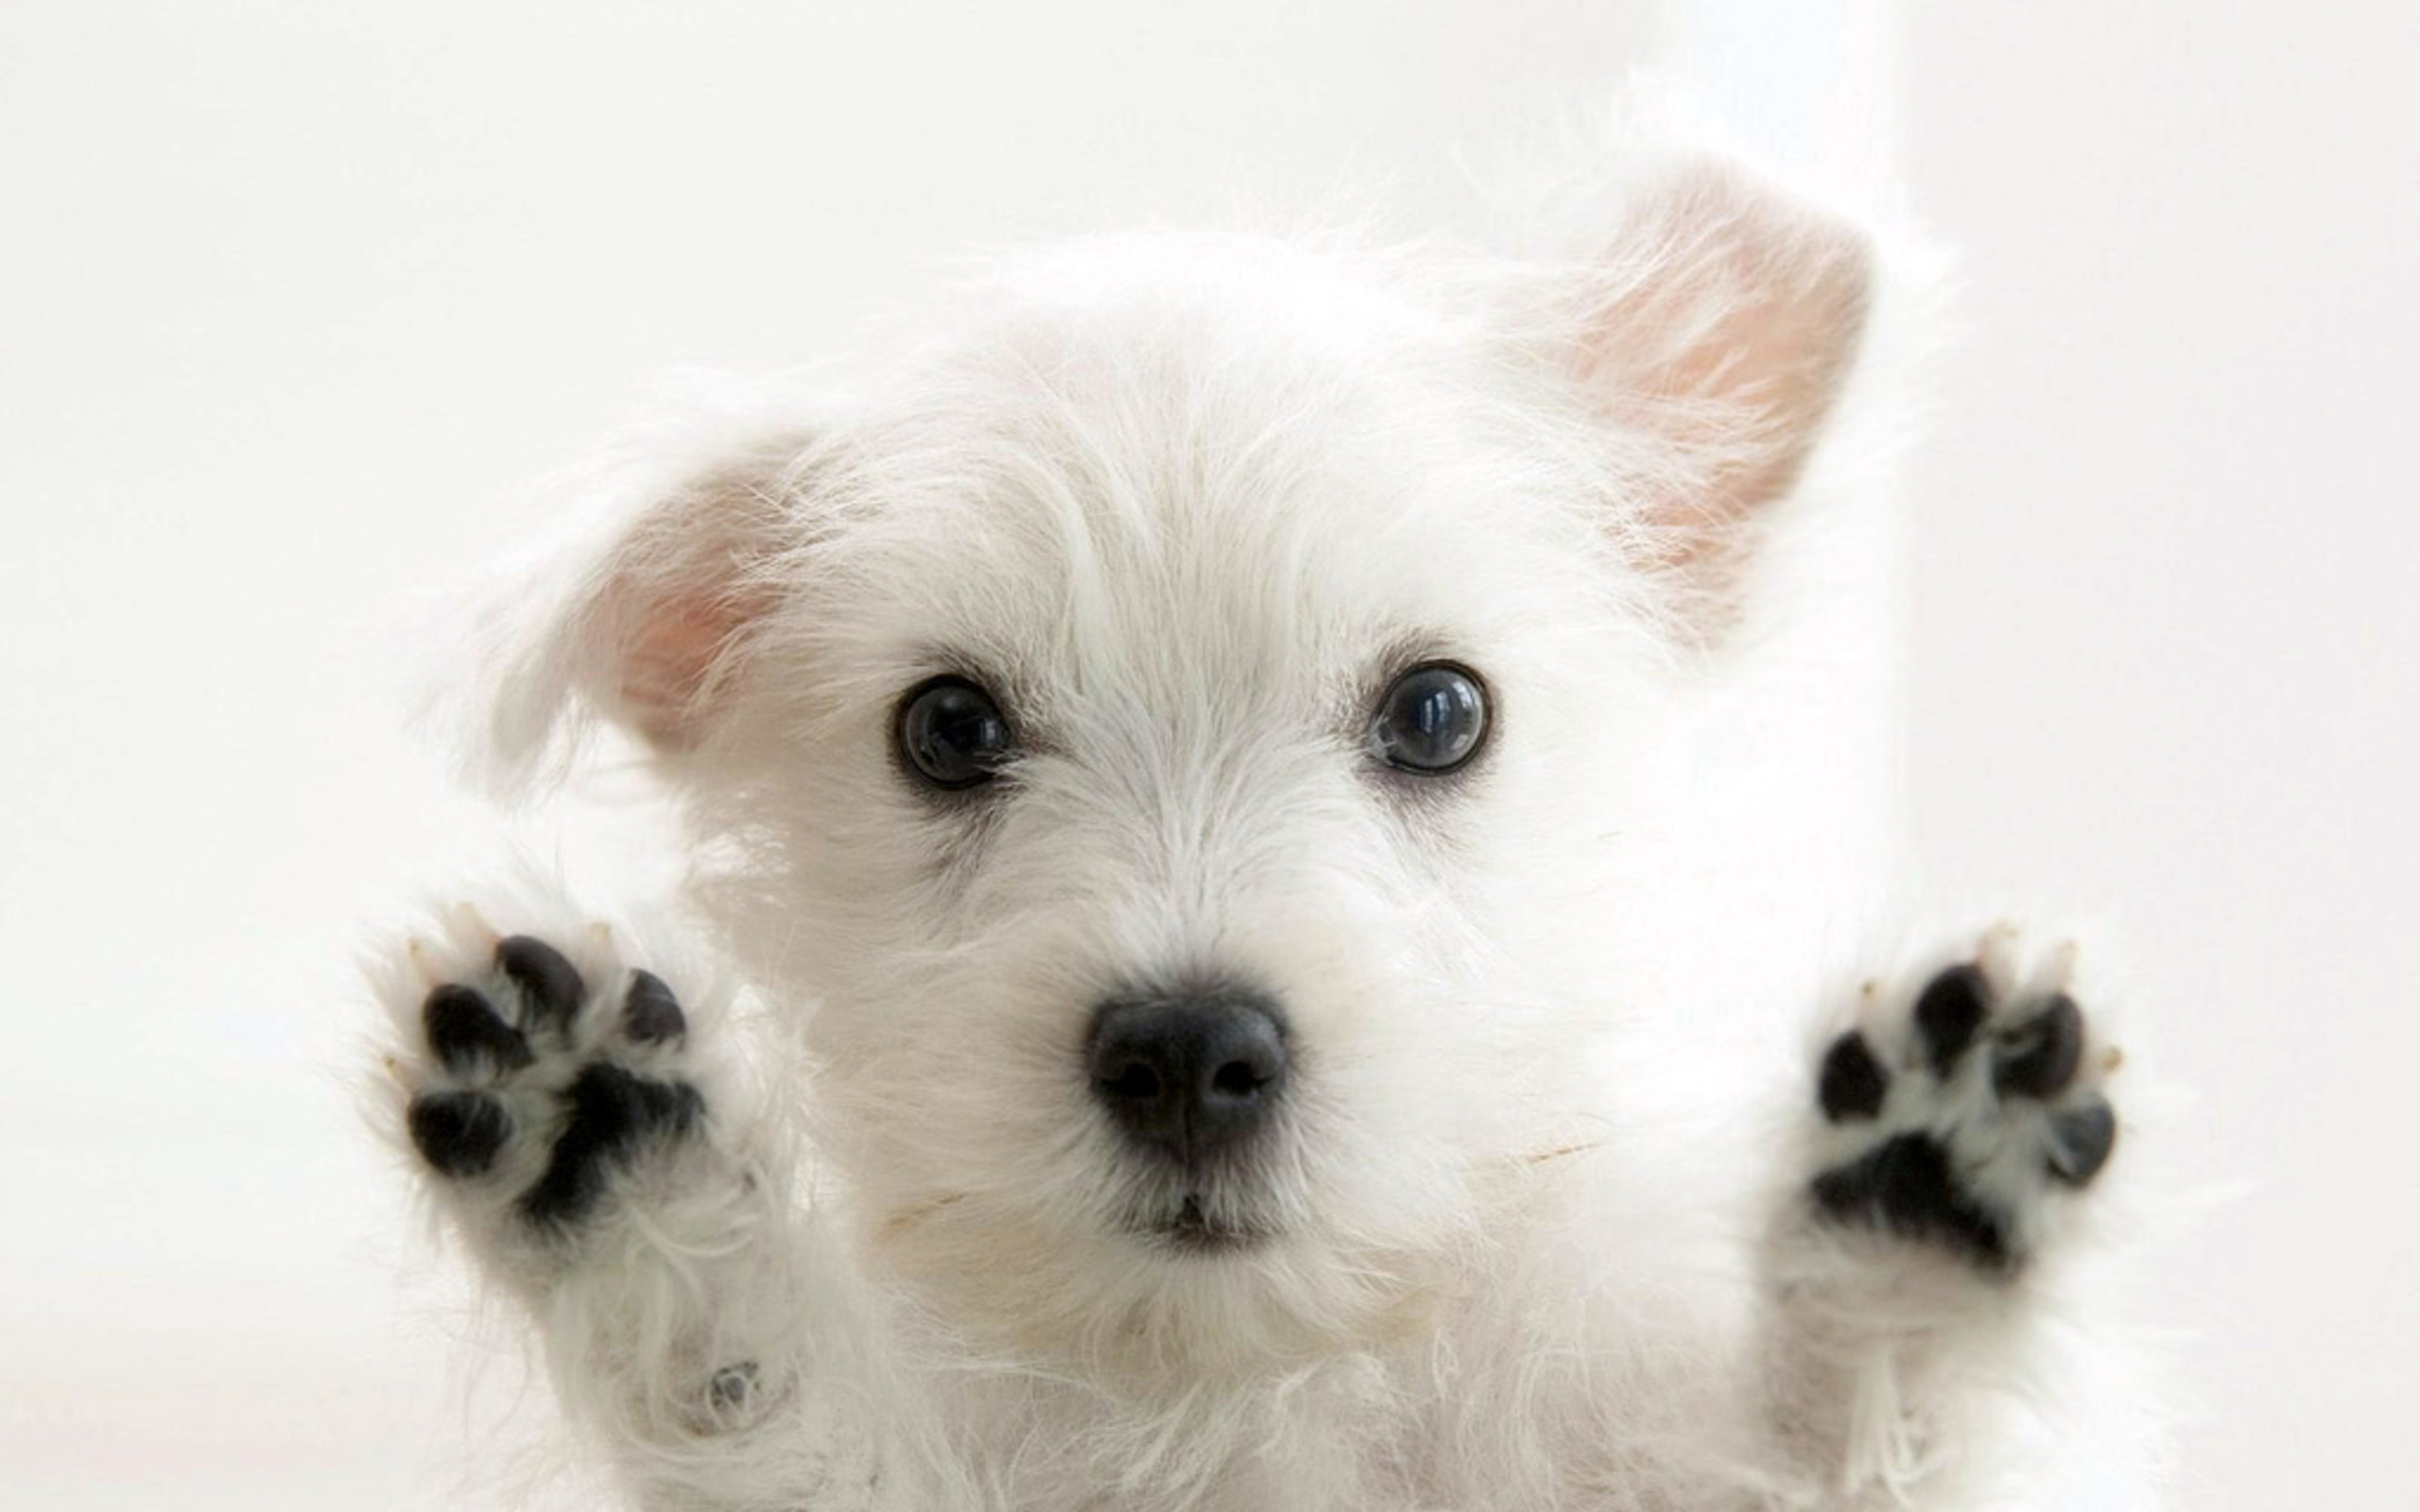 Puppy wallpaper image animals desktop wallpaper